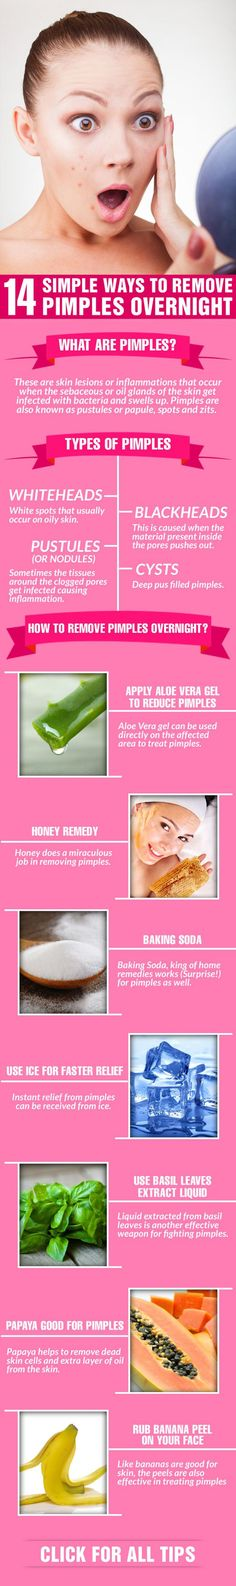 DIY Face Masks  : 14 Simple Ways To Remove #Pimples Overnight #beautytips